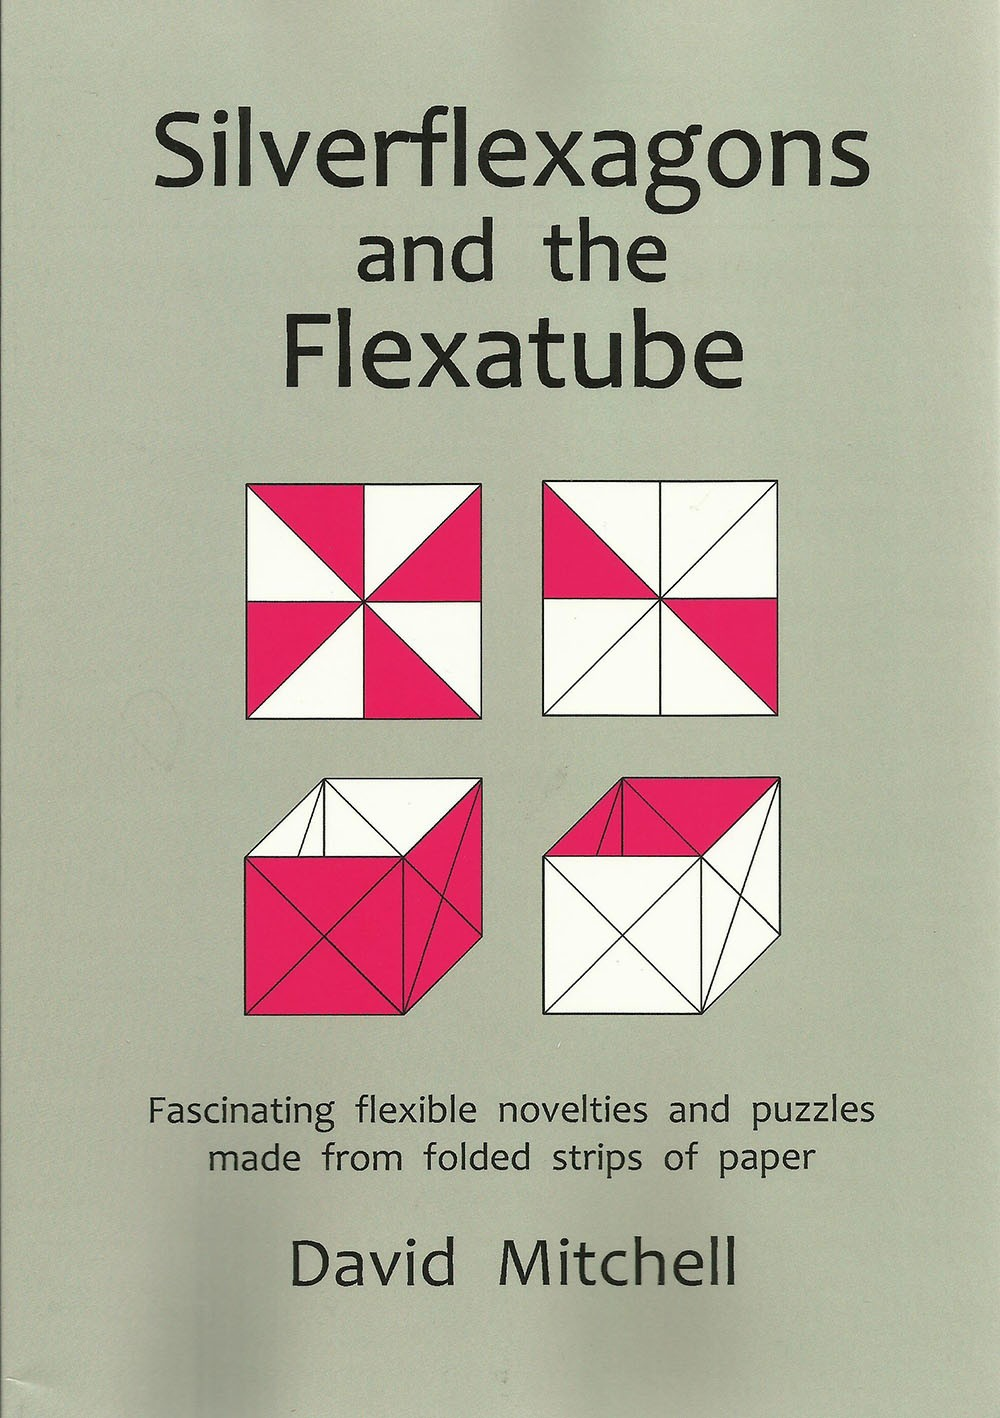 Silverflexagons and the Flexatube